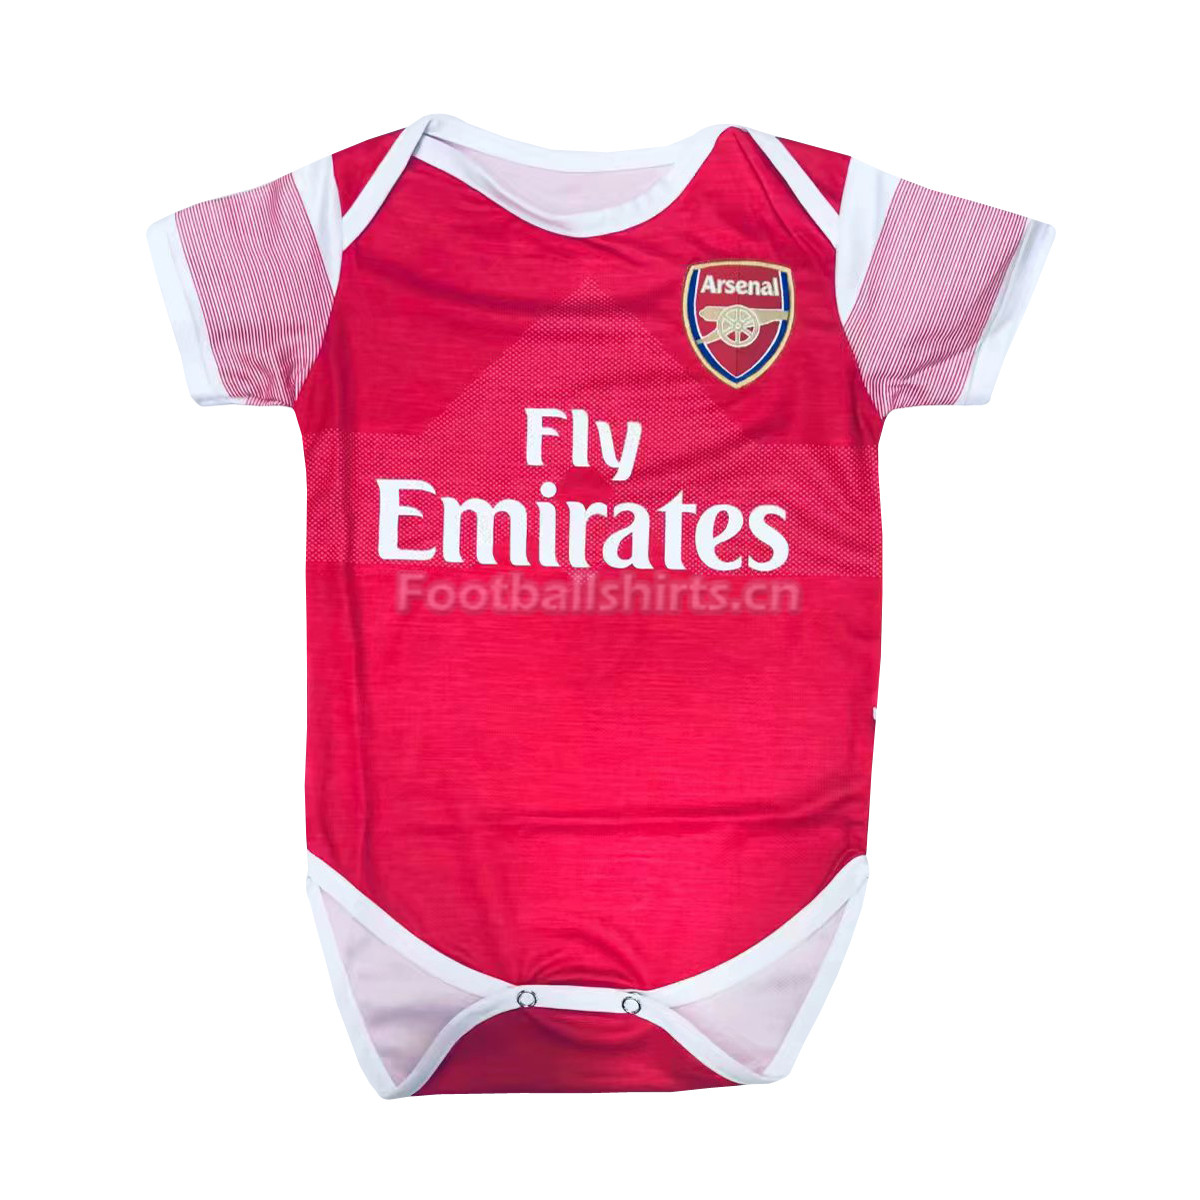 Arsenal Home Infant Soccer Jersey Suit 2018/19